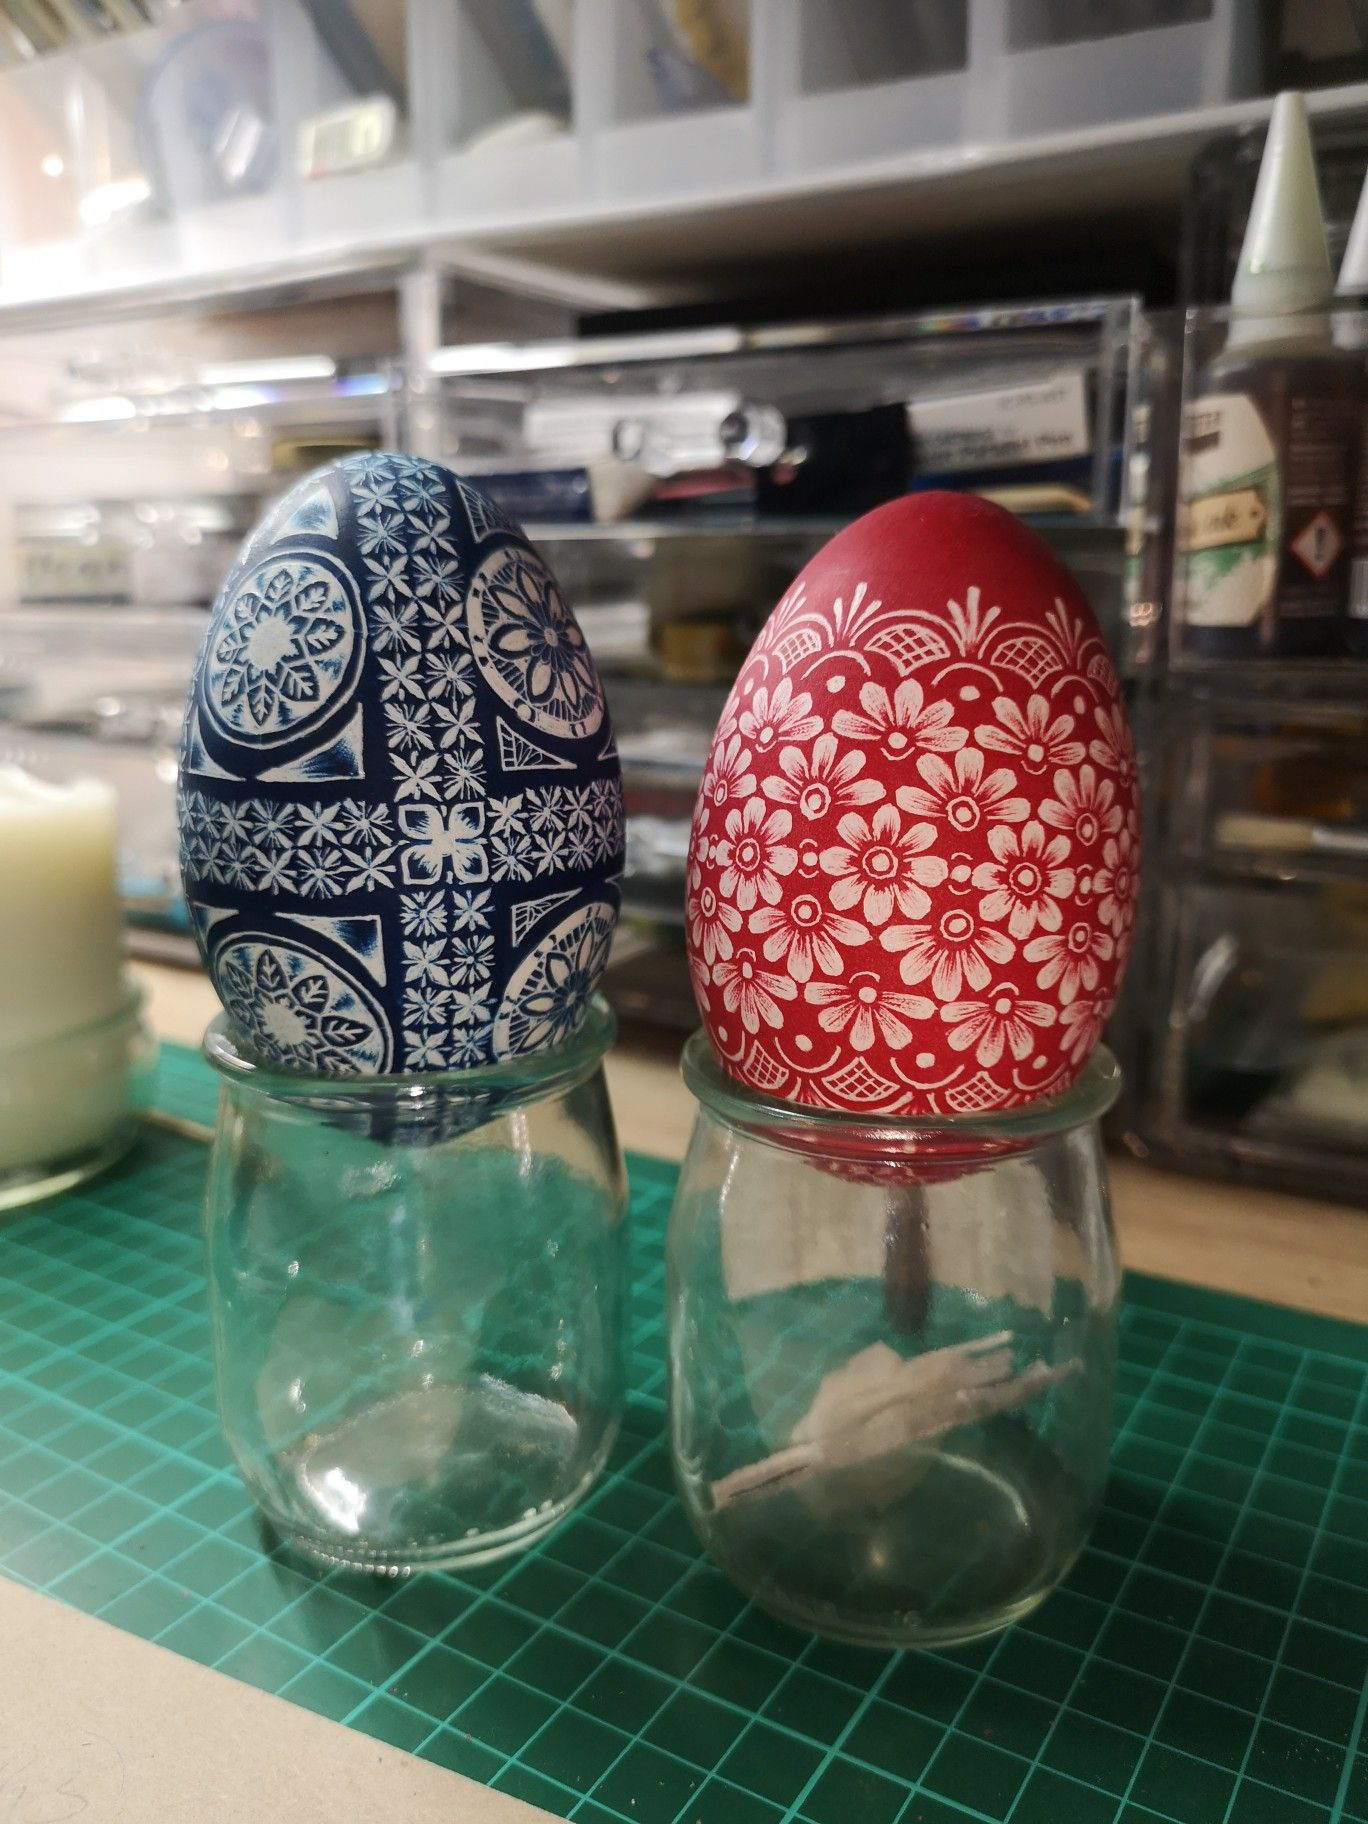 Pin By Chrissy Kolda On Inspiring Pysanky With Images Egg Decorating Egg Painting Stemless Wine Glass